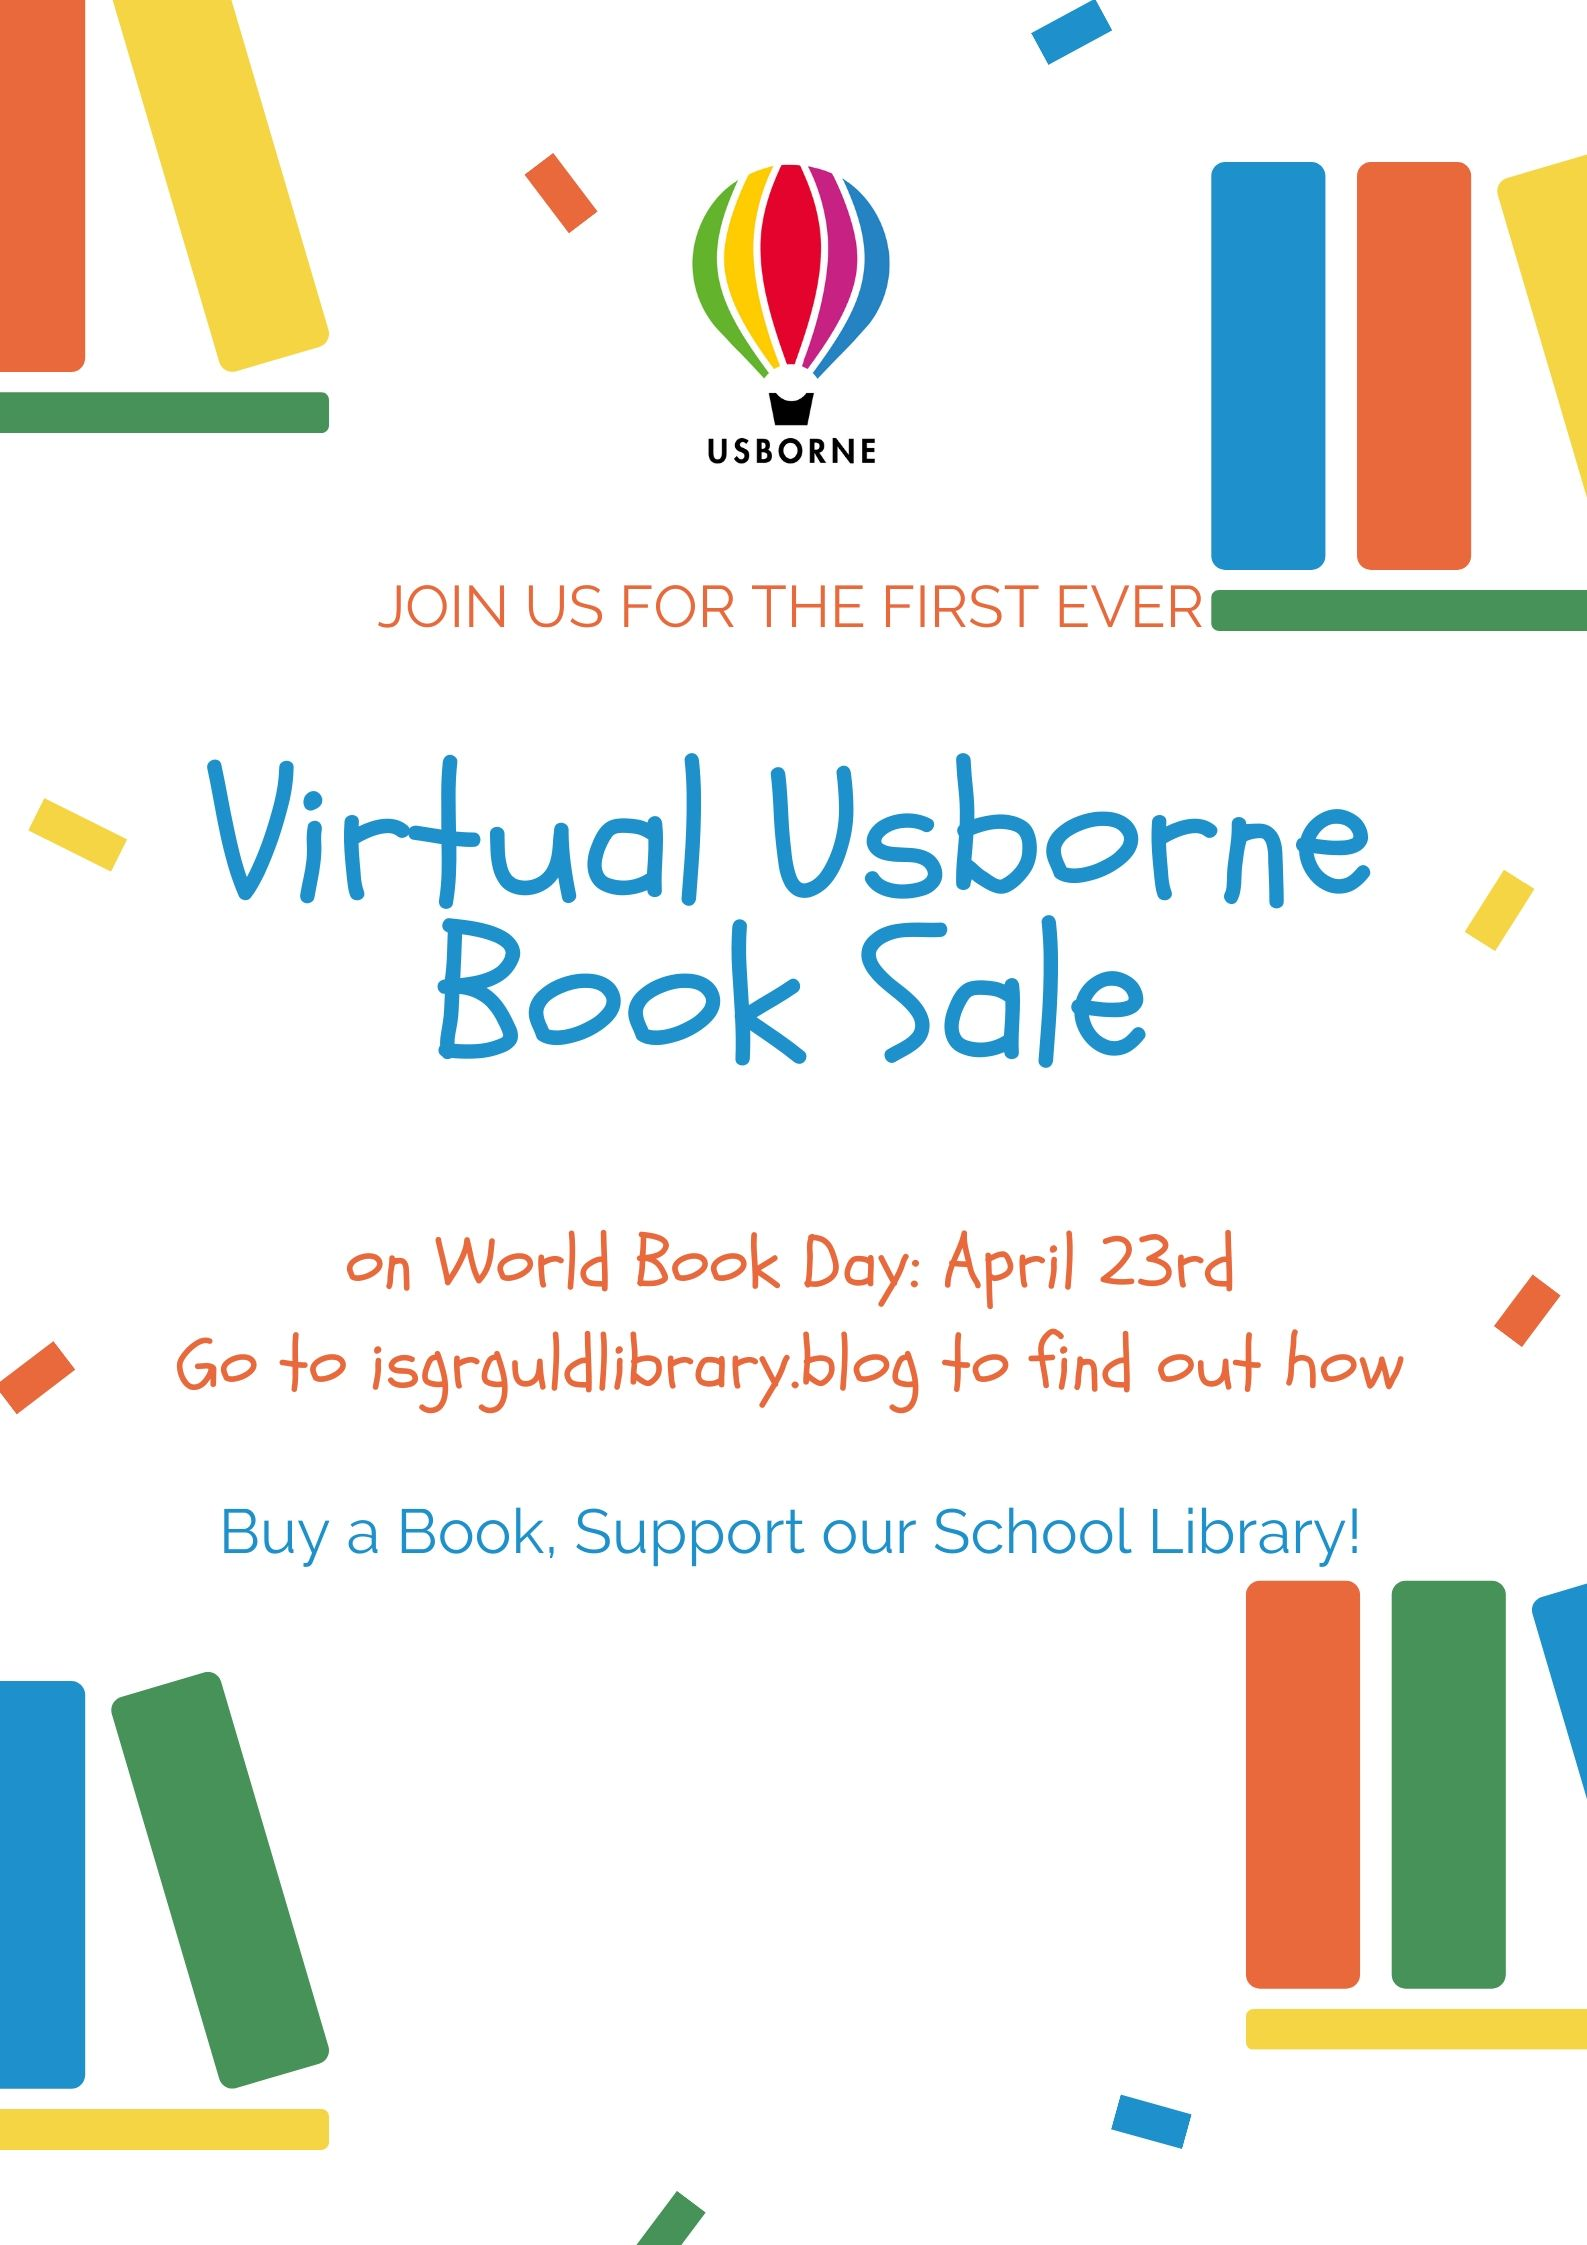 Virtual Usborne Book Sale